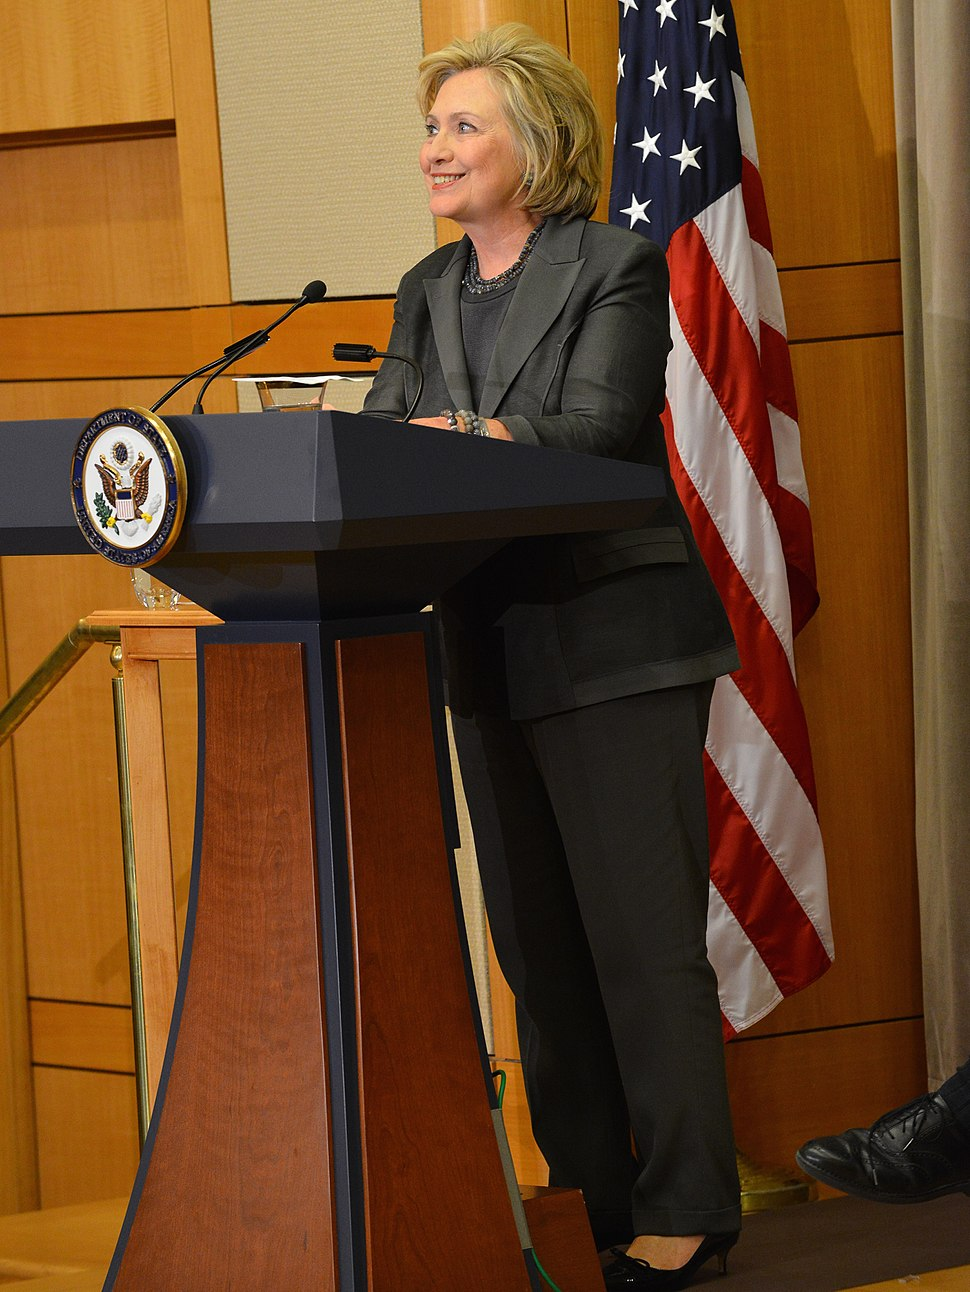 Former Secretary of State Clinton Delivers Remarks at Groundbreaking Ceremony of the U.S. Diplomacy Center (14943786999) (cropped)